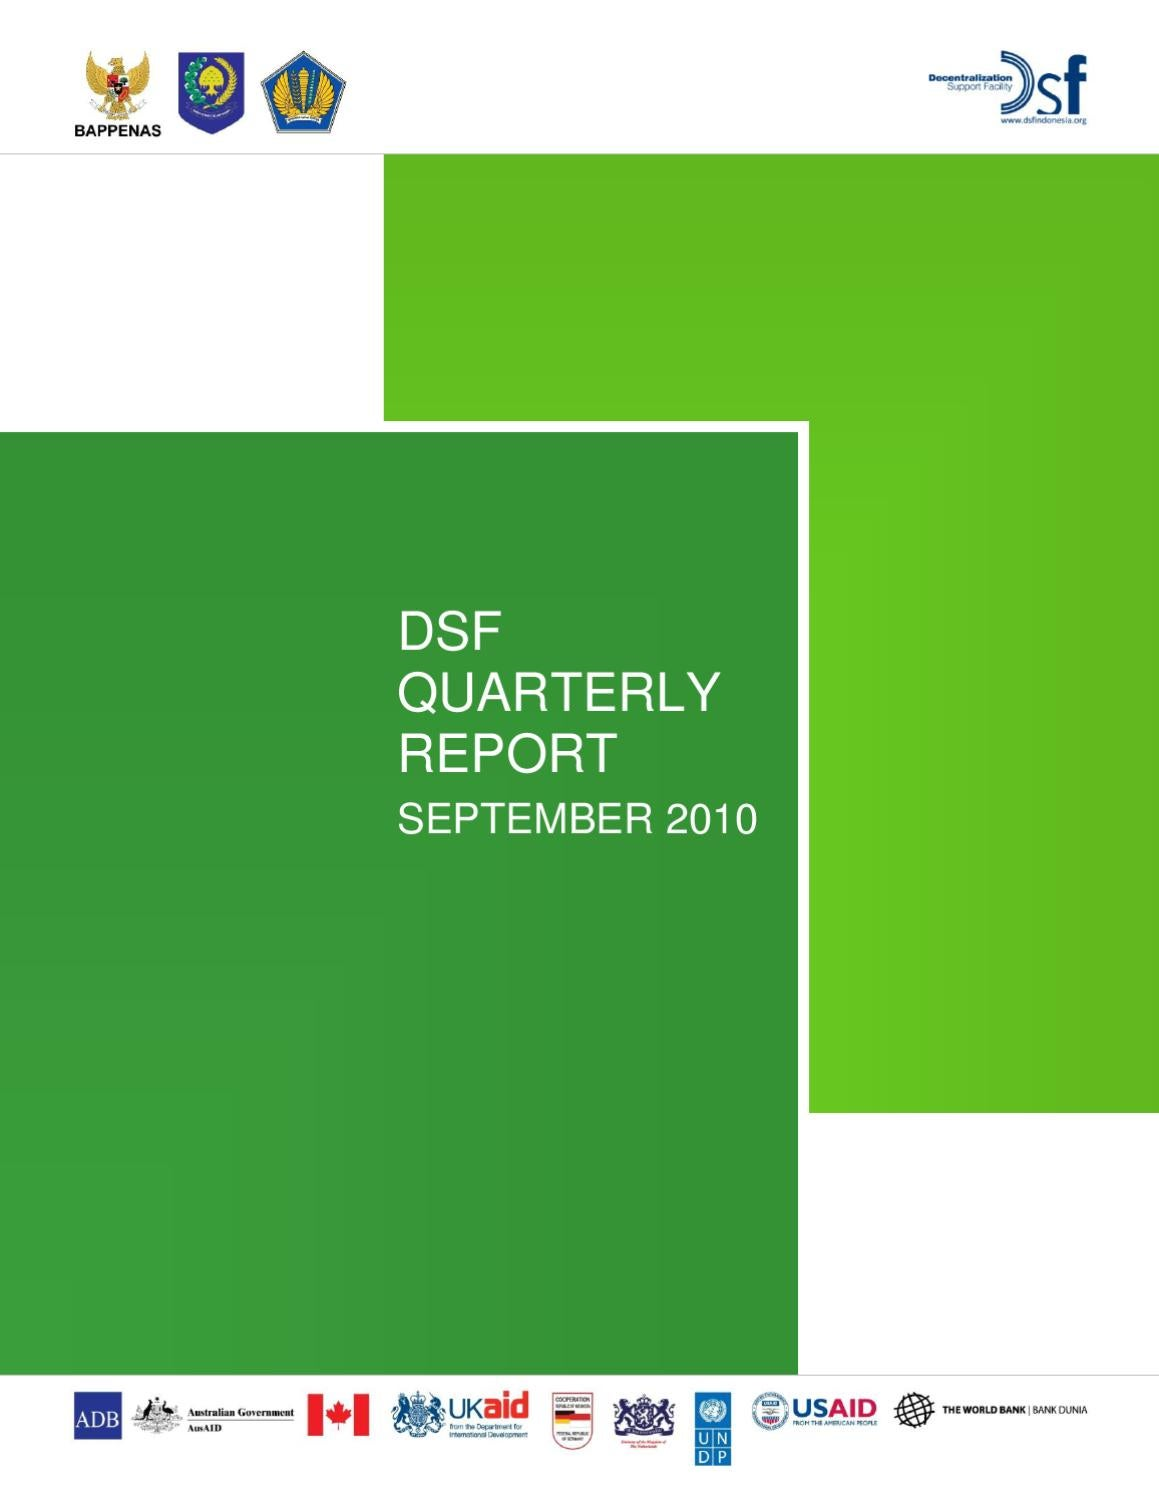 Dsf Bank Dsf Quarterly Report September 2010